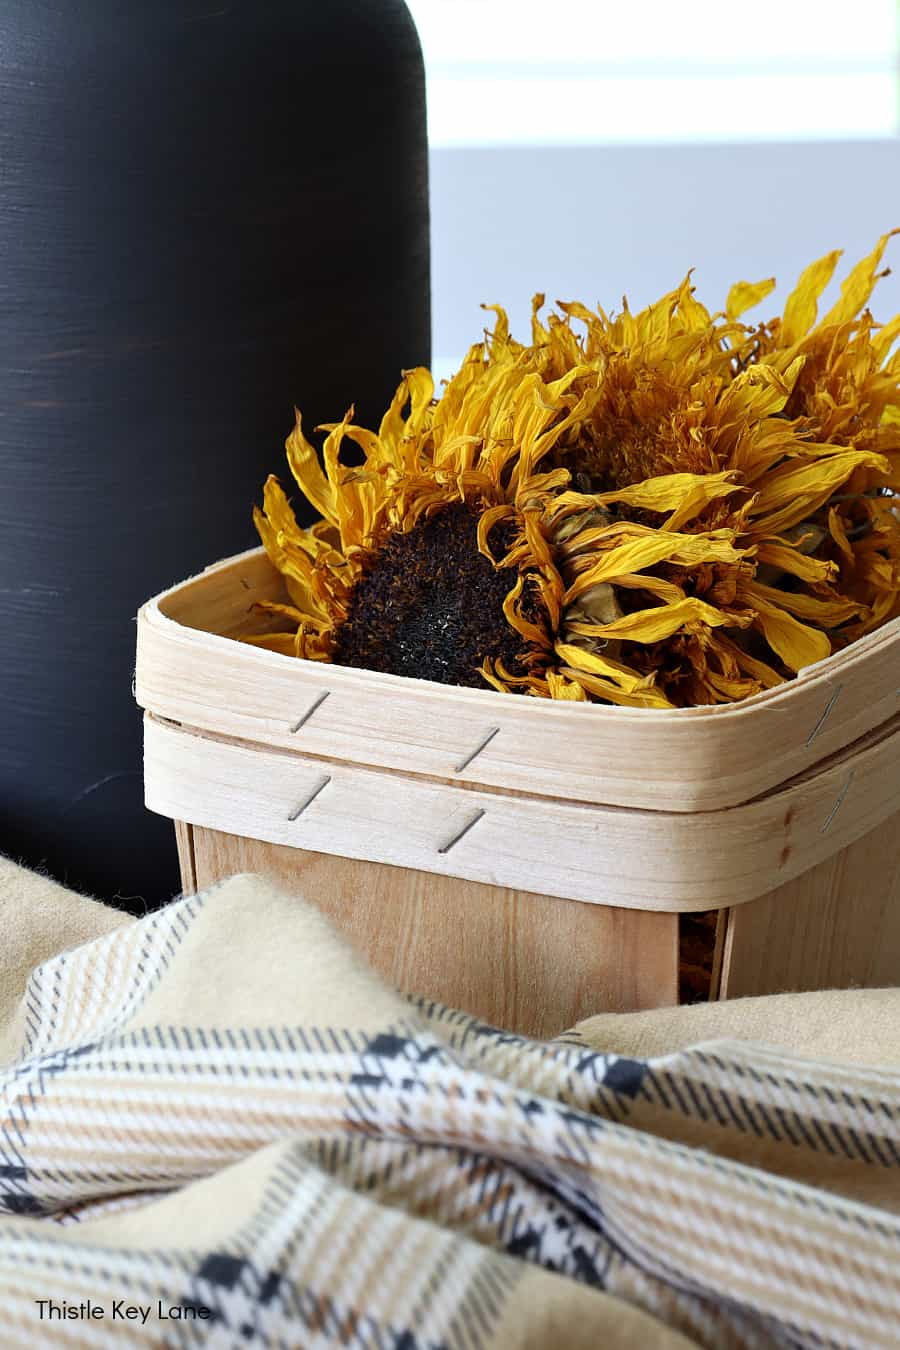 Berry basket with dried sunflower heads. How To Make A Plaid Table Throw.